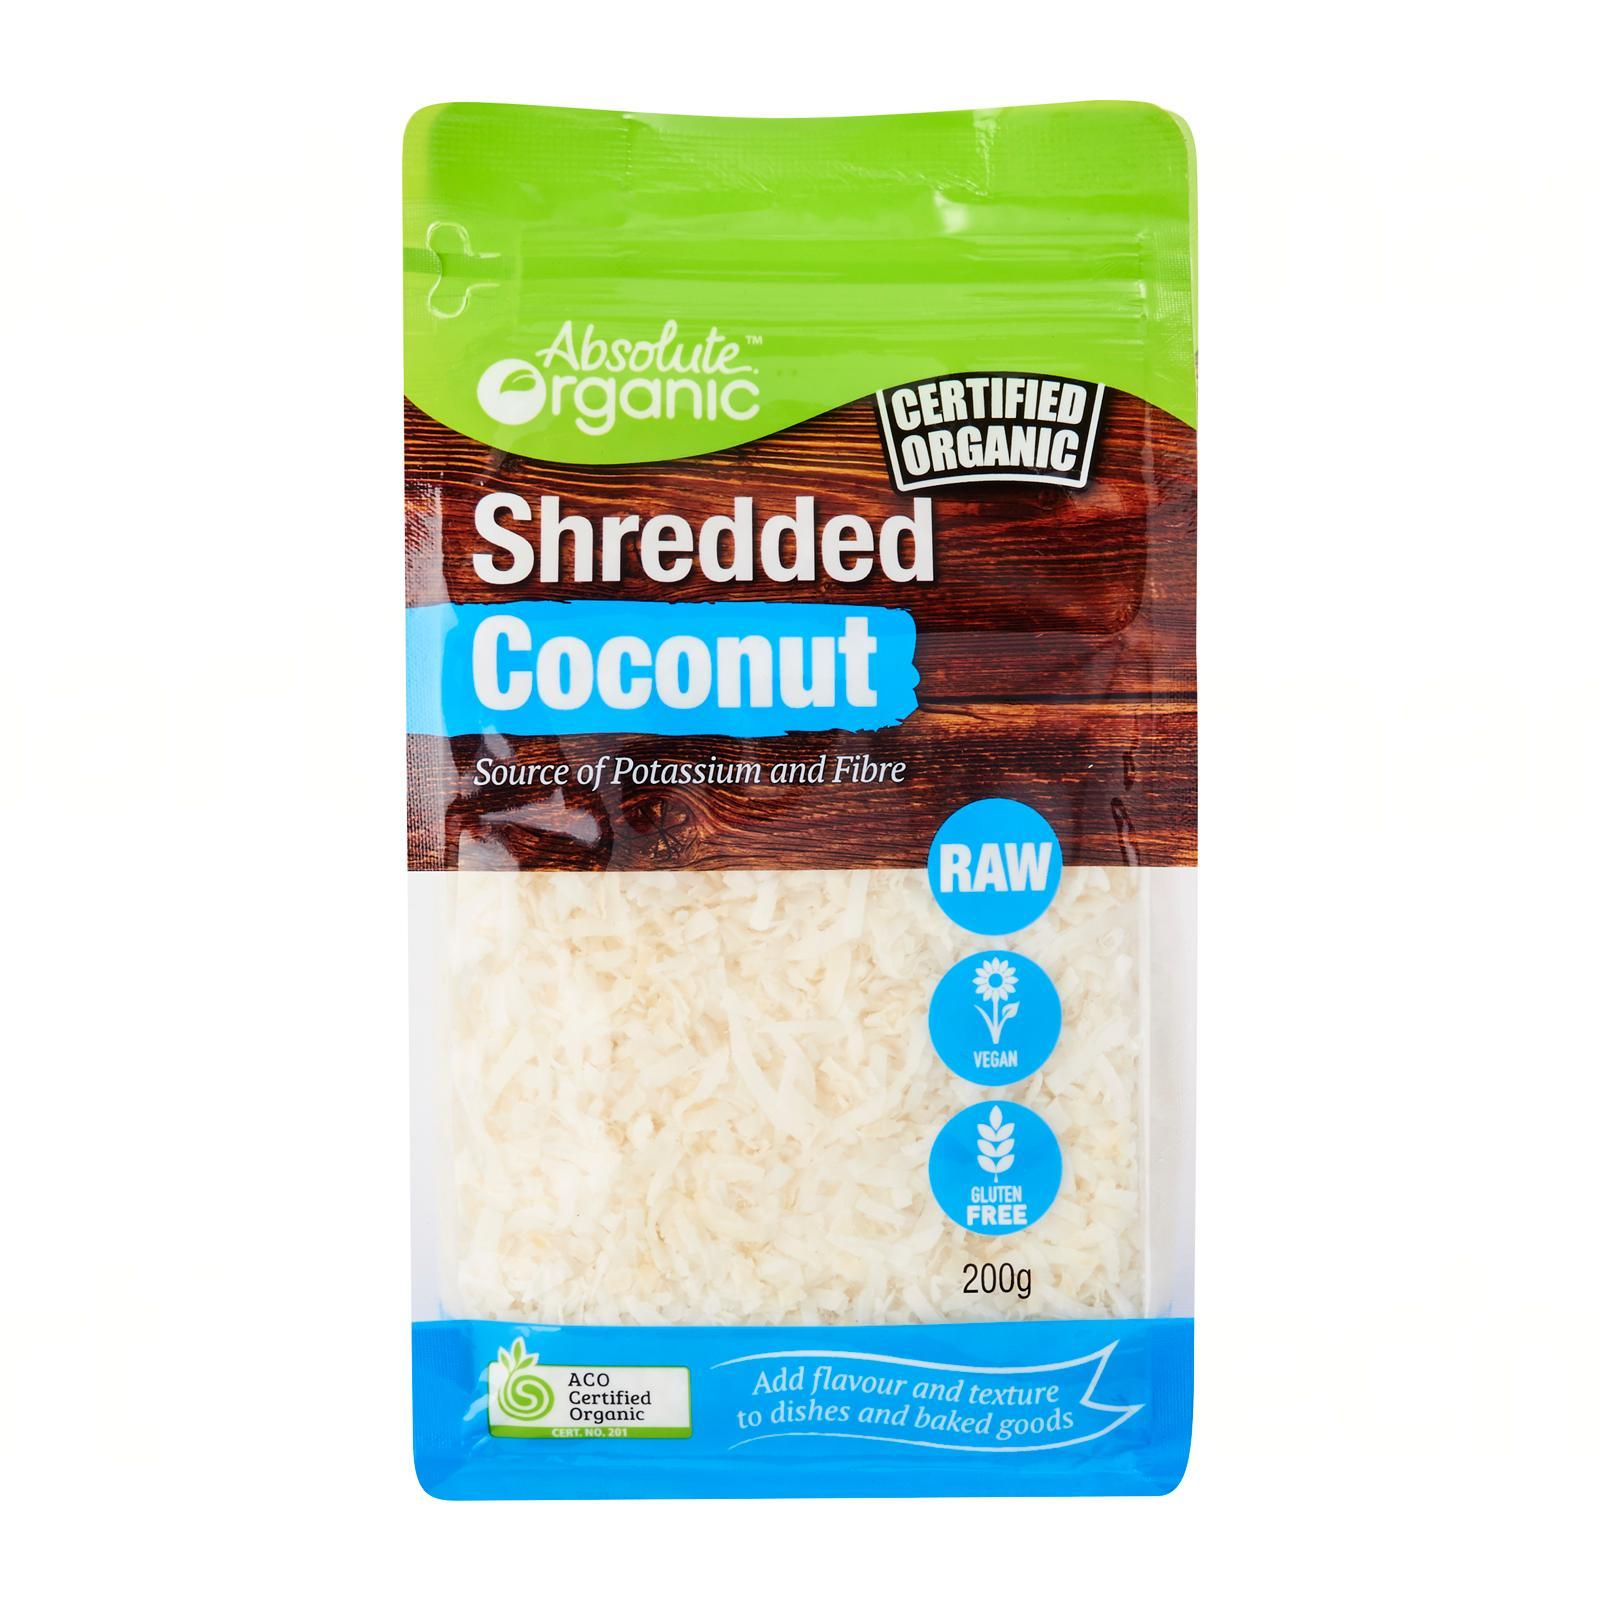 Absolute Organic Shredded Coconut - By Wholesome Harvest